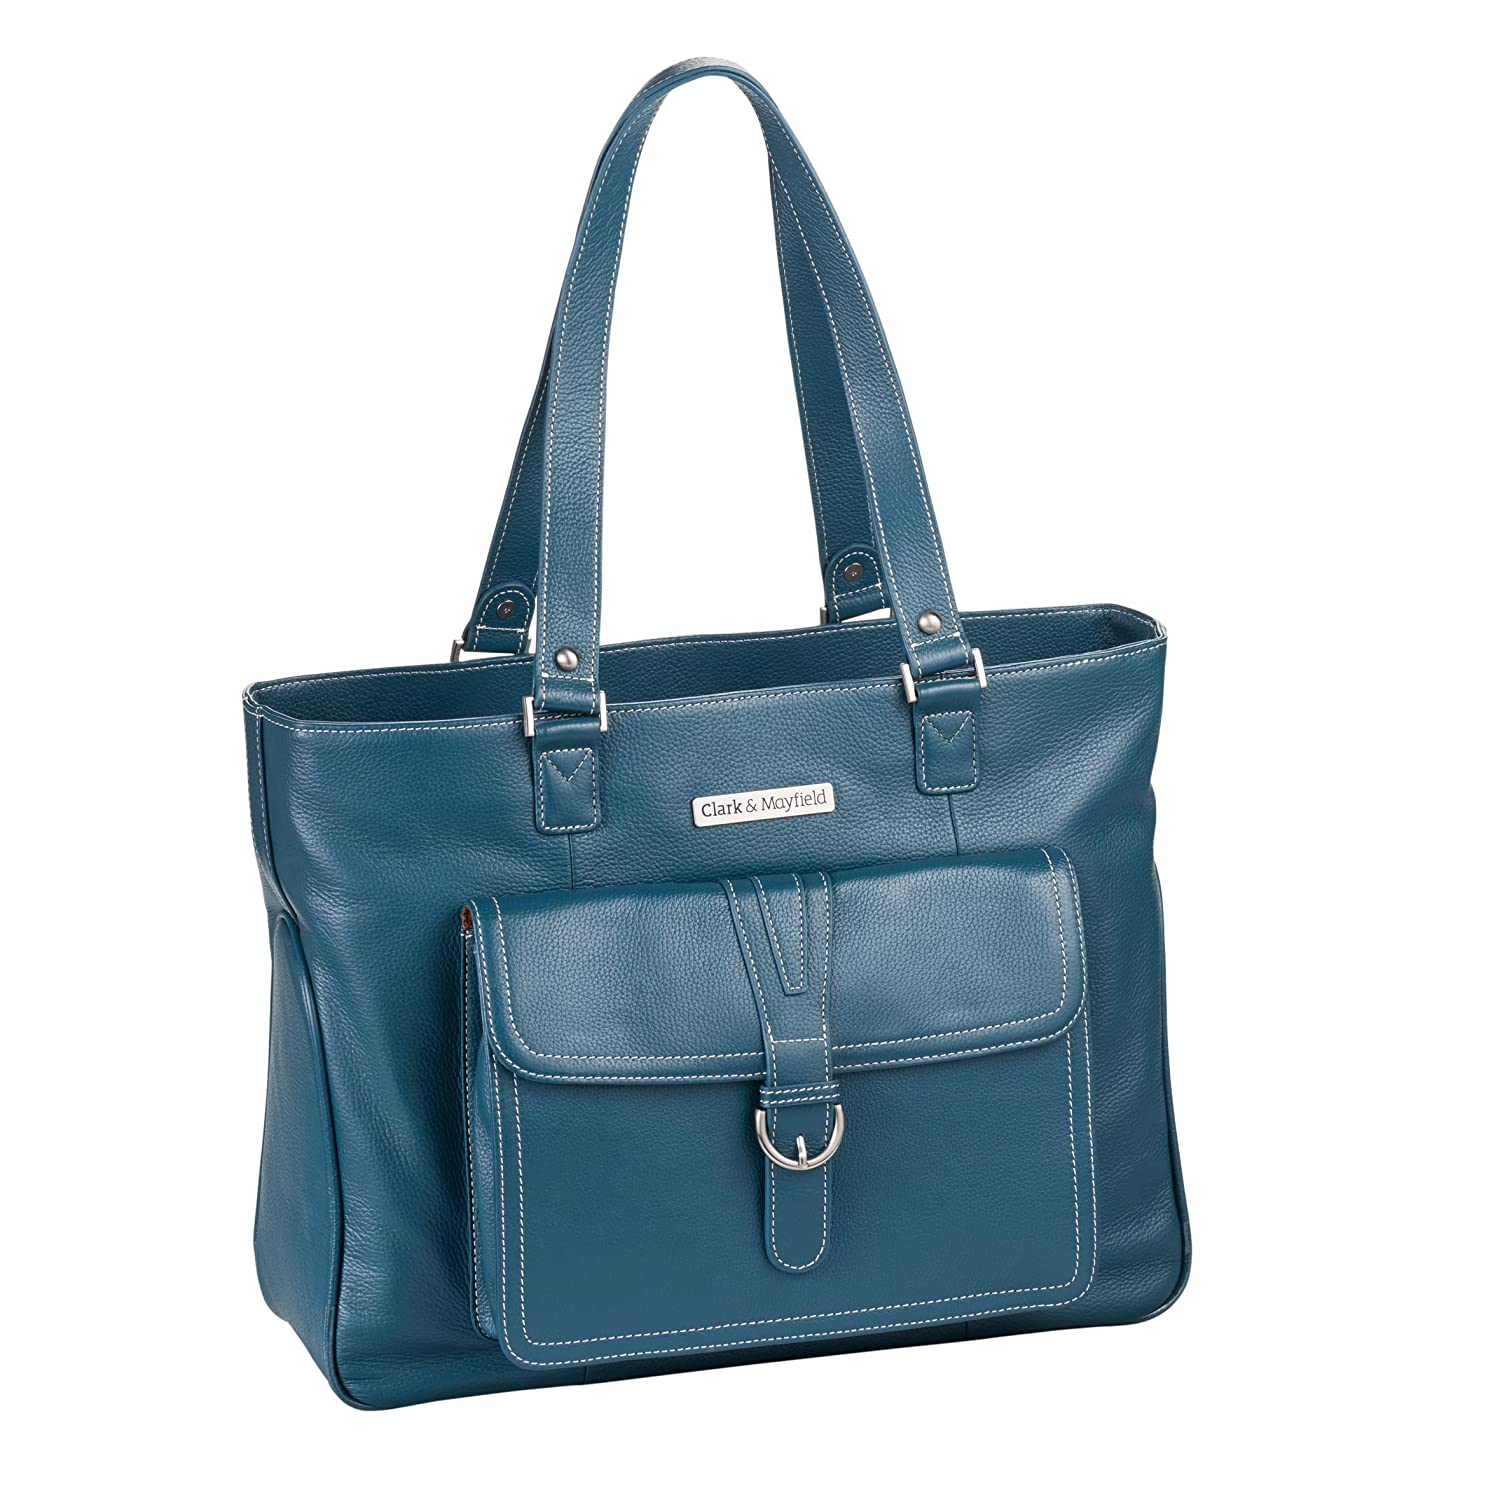 "Clark & Mayfield Stafford Pro Leather Laptop Tote 17.3"" (Deep Teal) new"